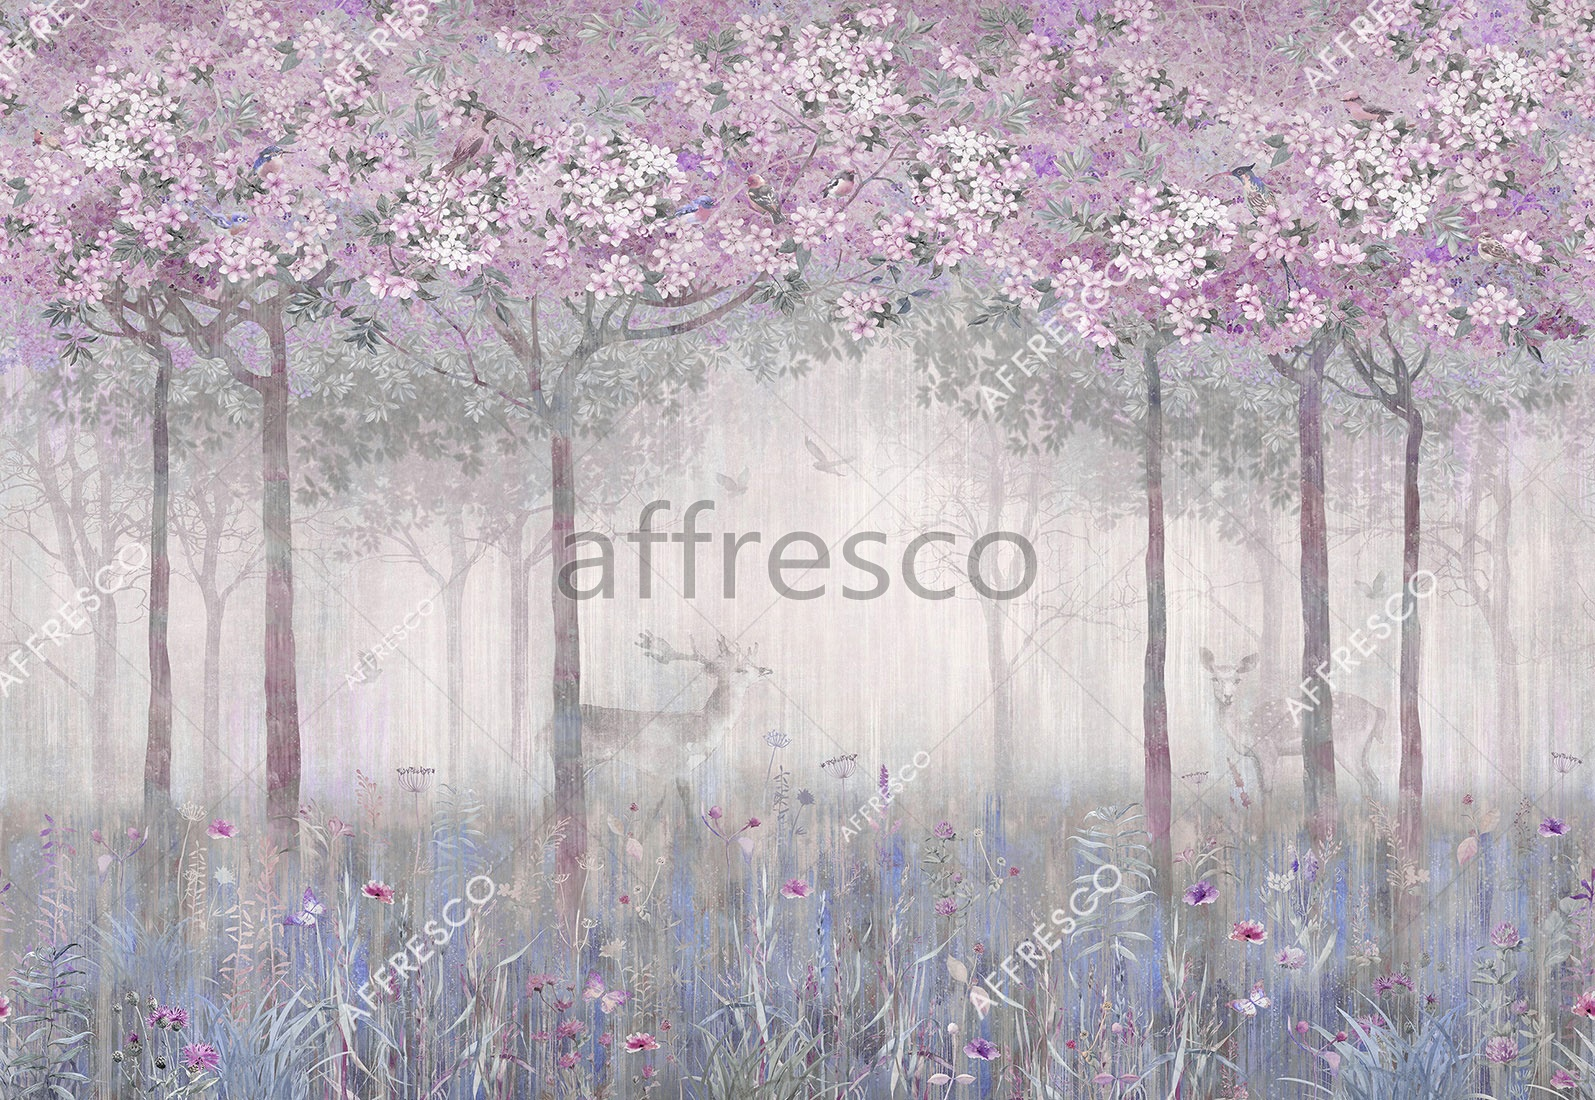 ID135999 | Forest |  | Affresco Factory